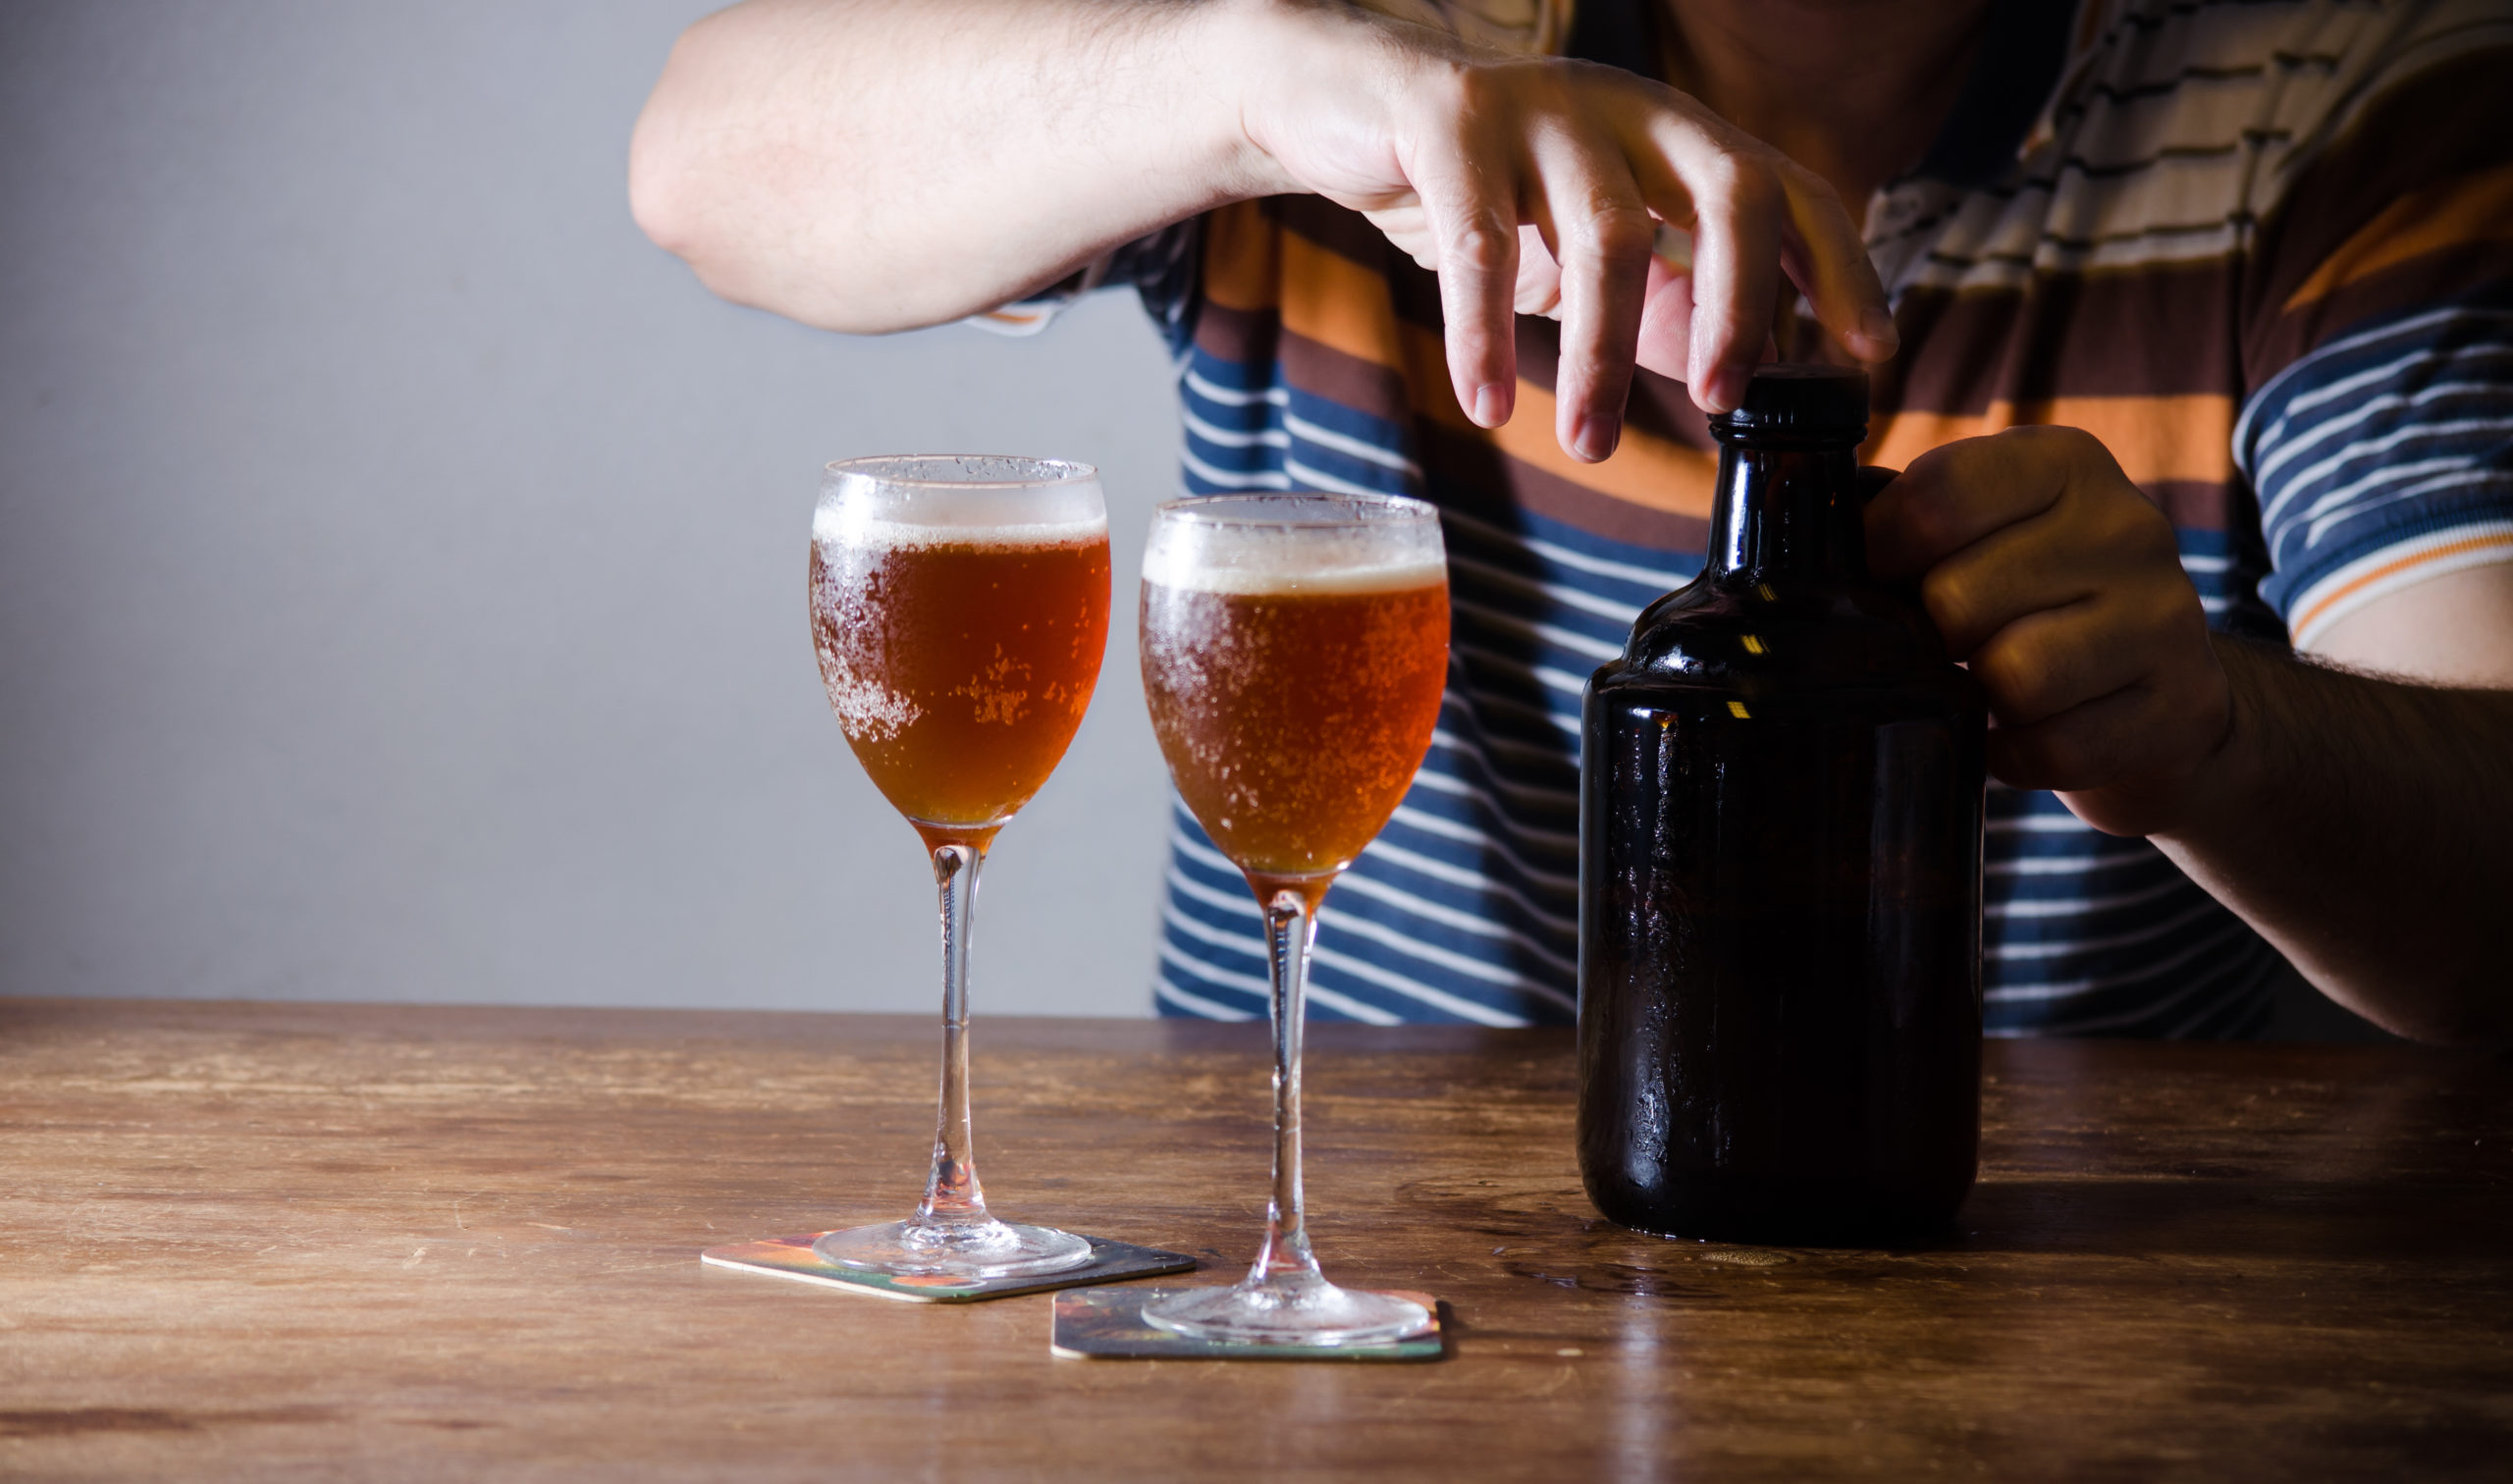 Serving a growler of craft beer from Arlington breweries